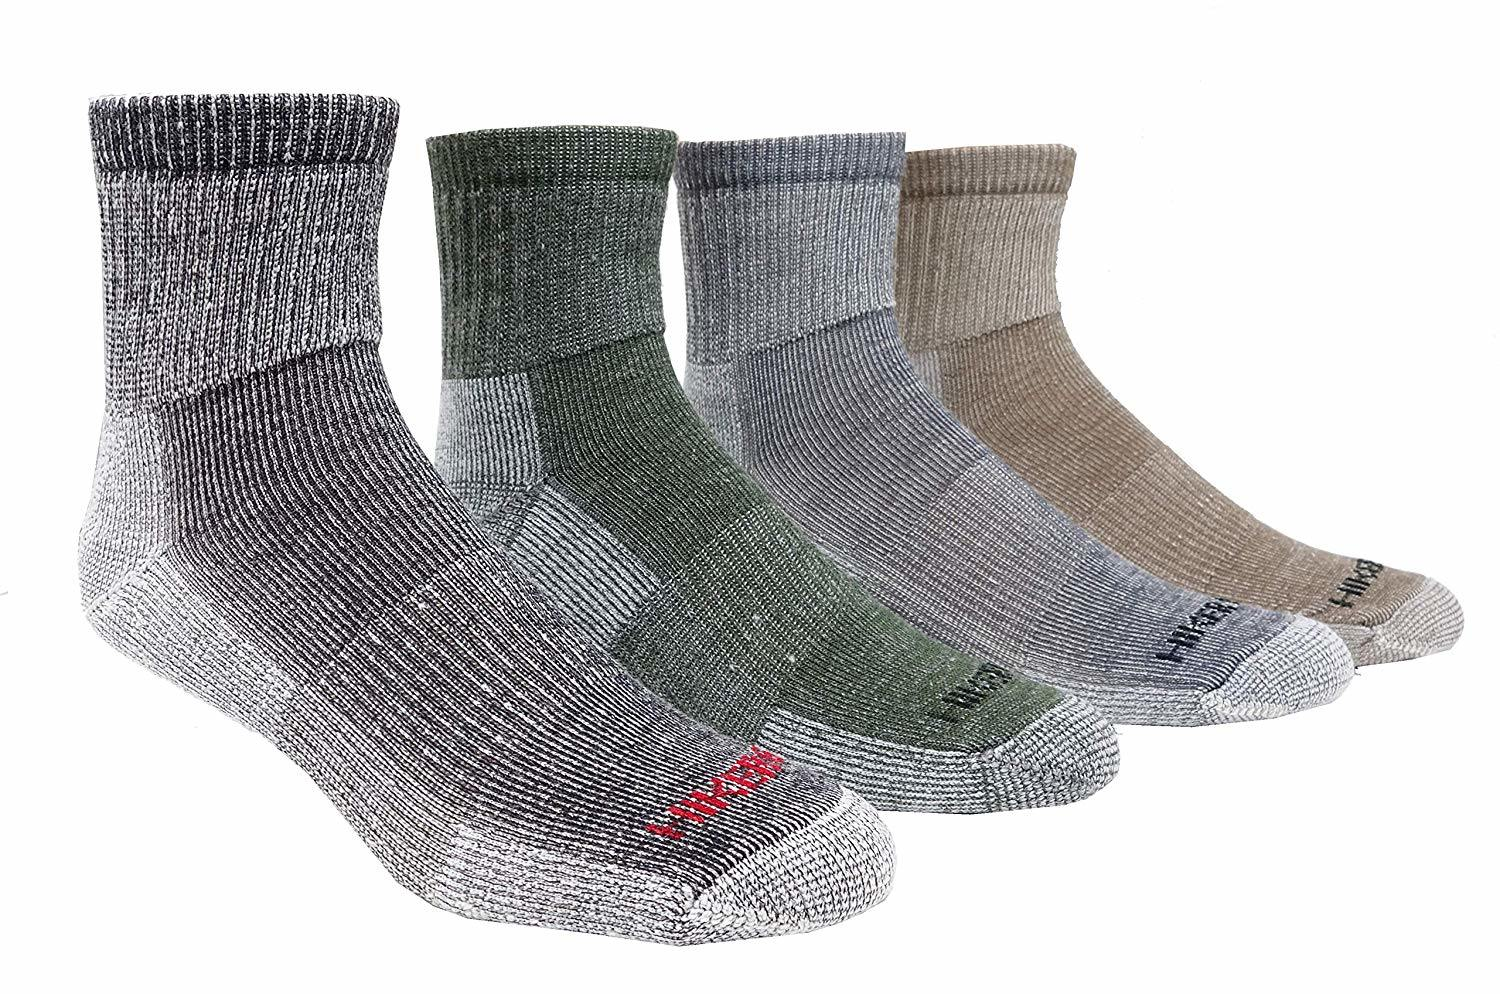 J.B. Field's Super-Wool Hiker GX Low-cut 1/4 Hiking Socks